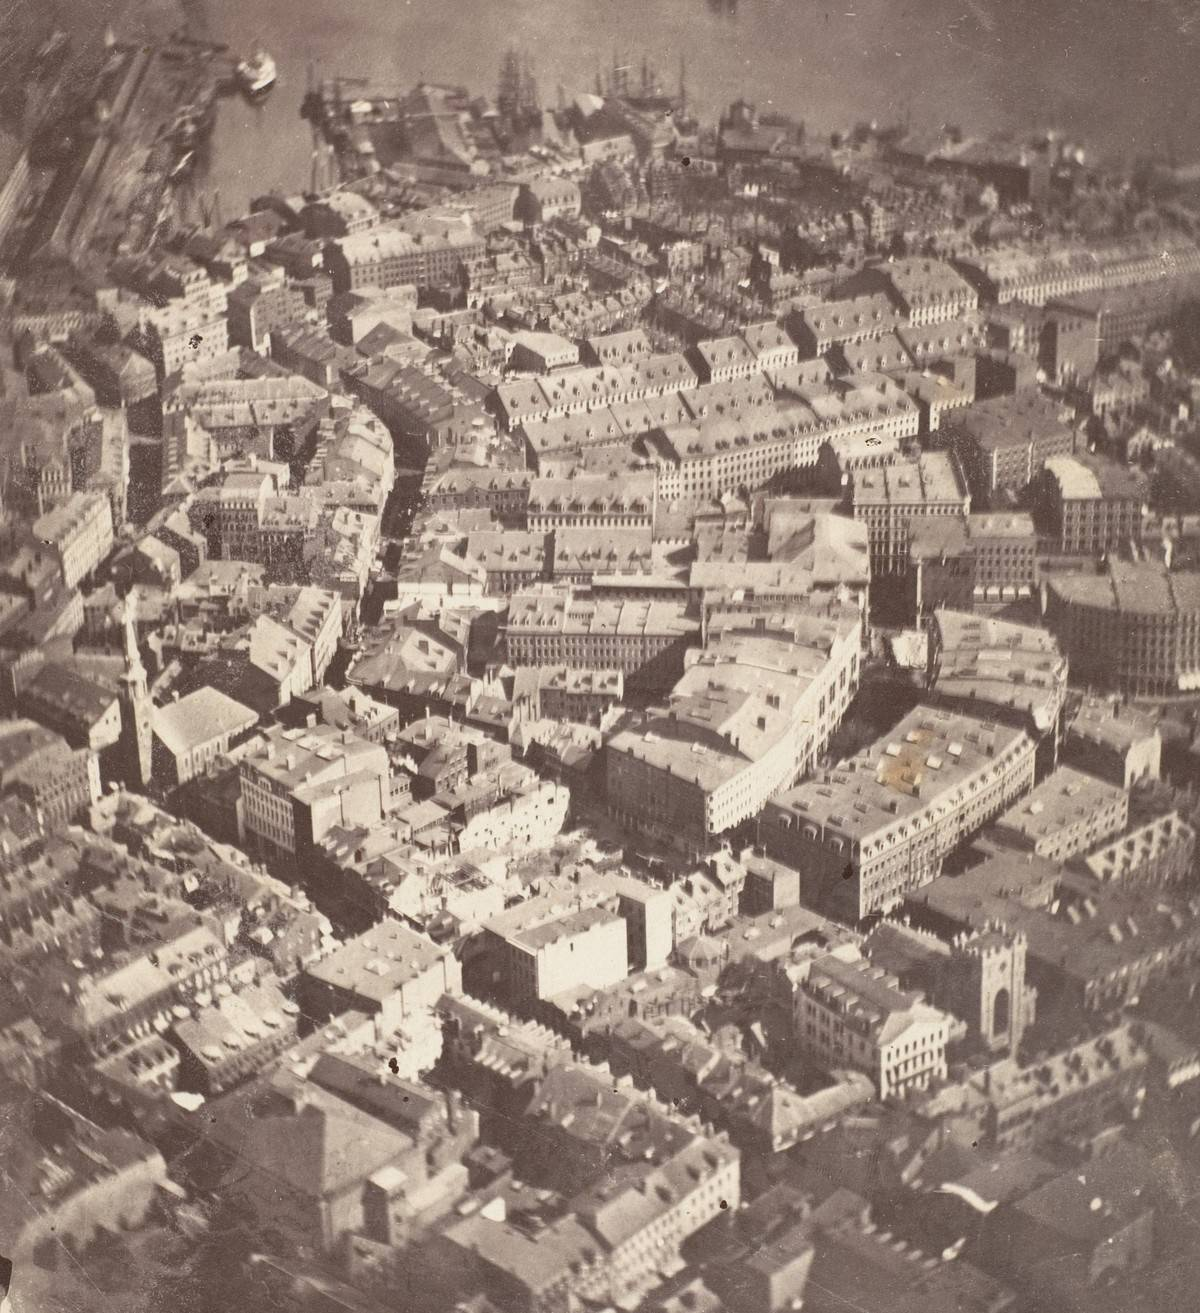 The first aerial picture of Boston dates back to 1860.